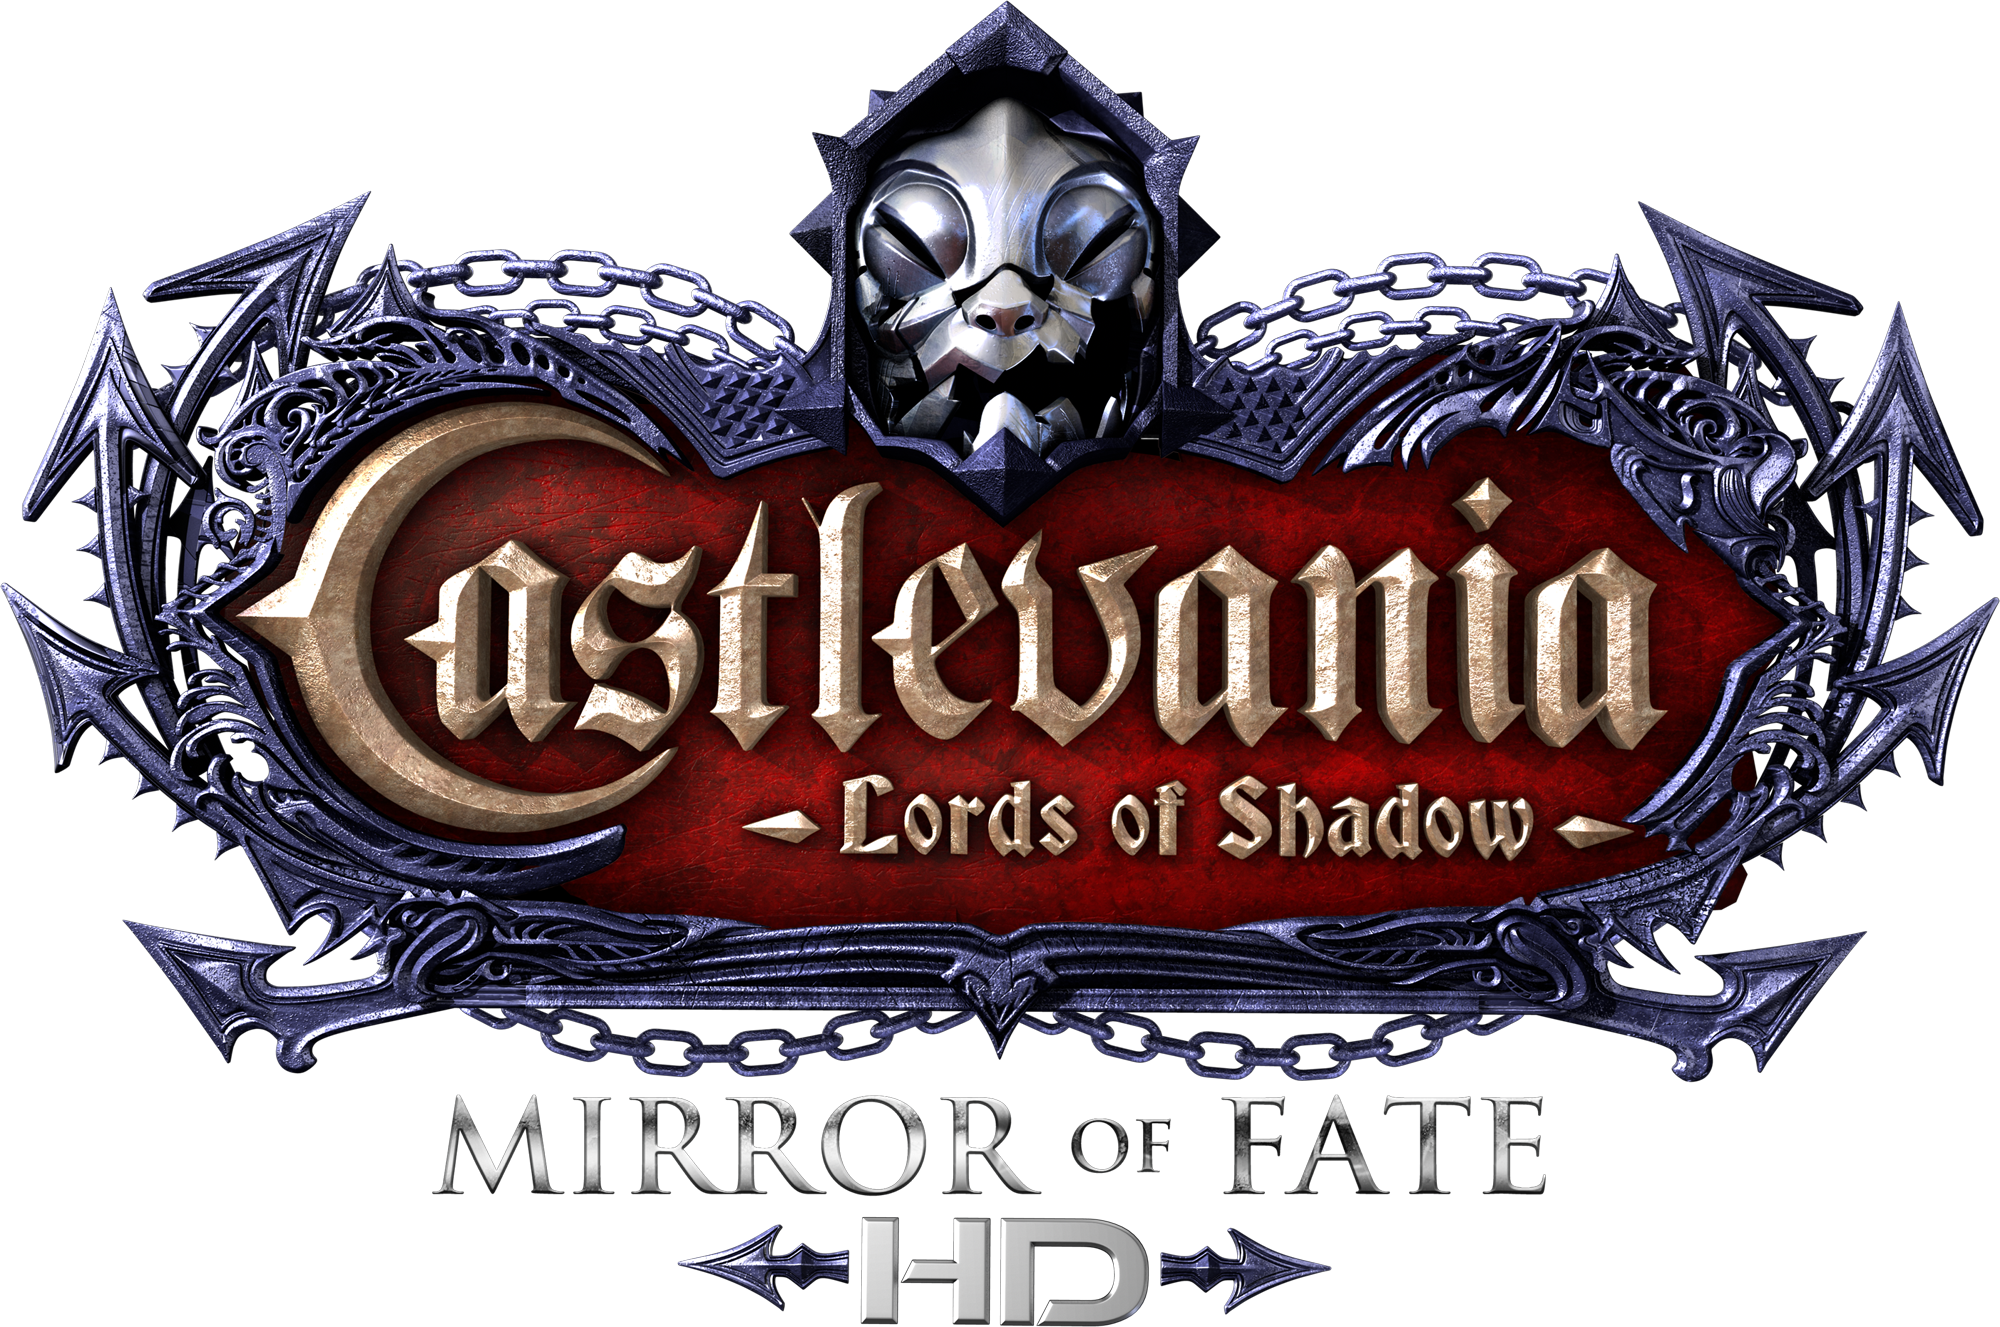 lords of shadow mirror of fate